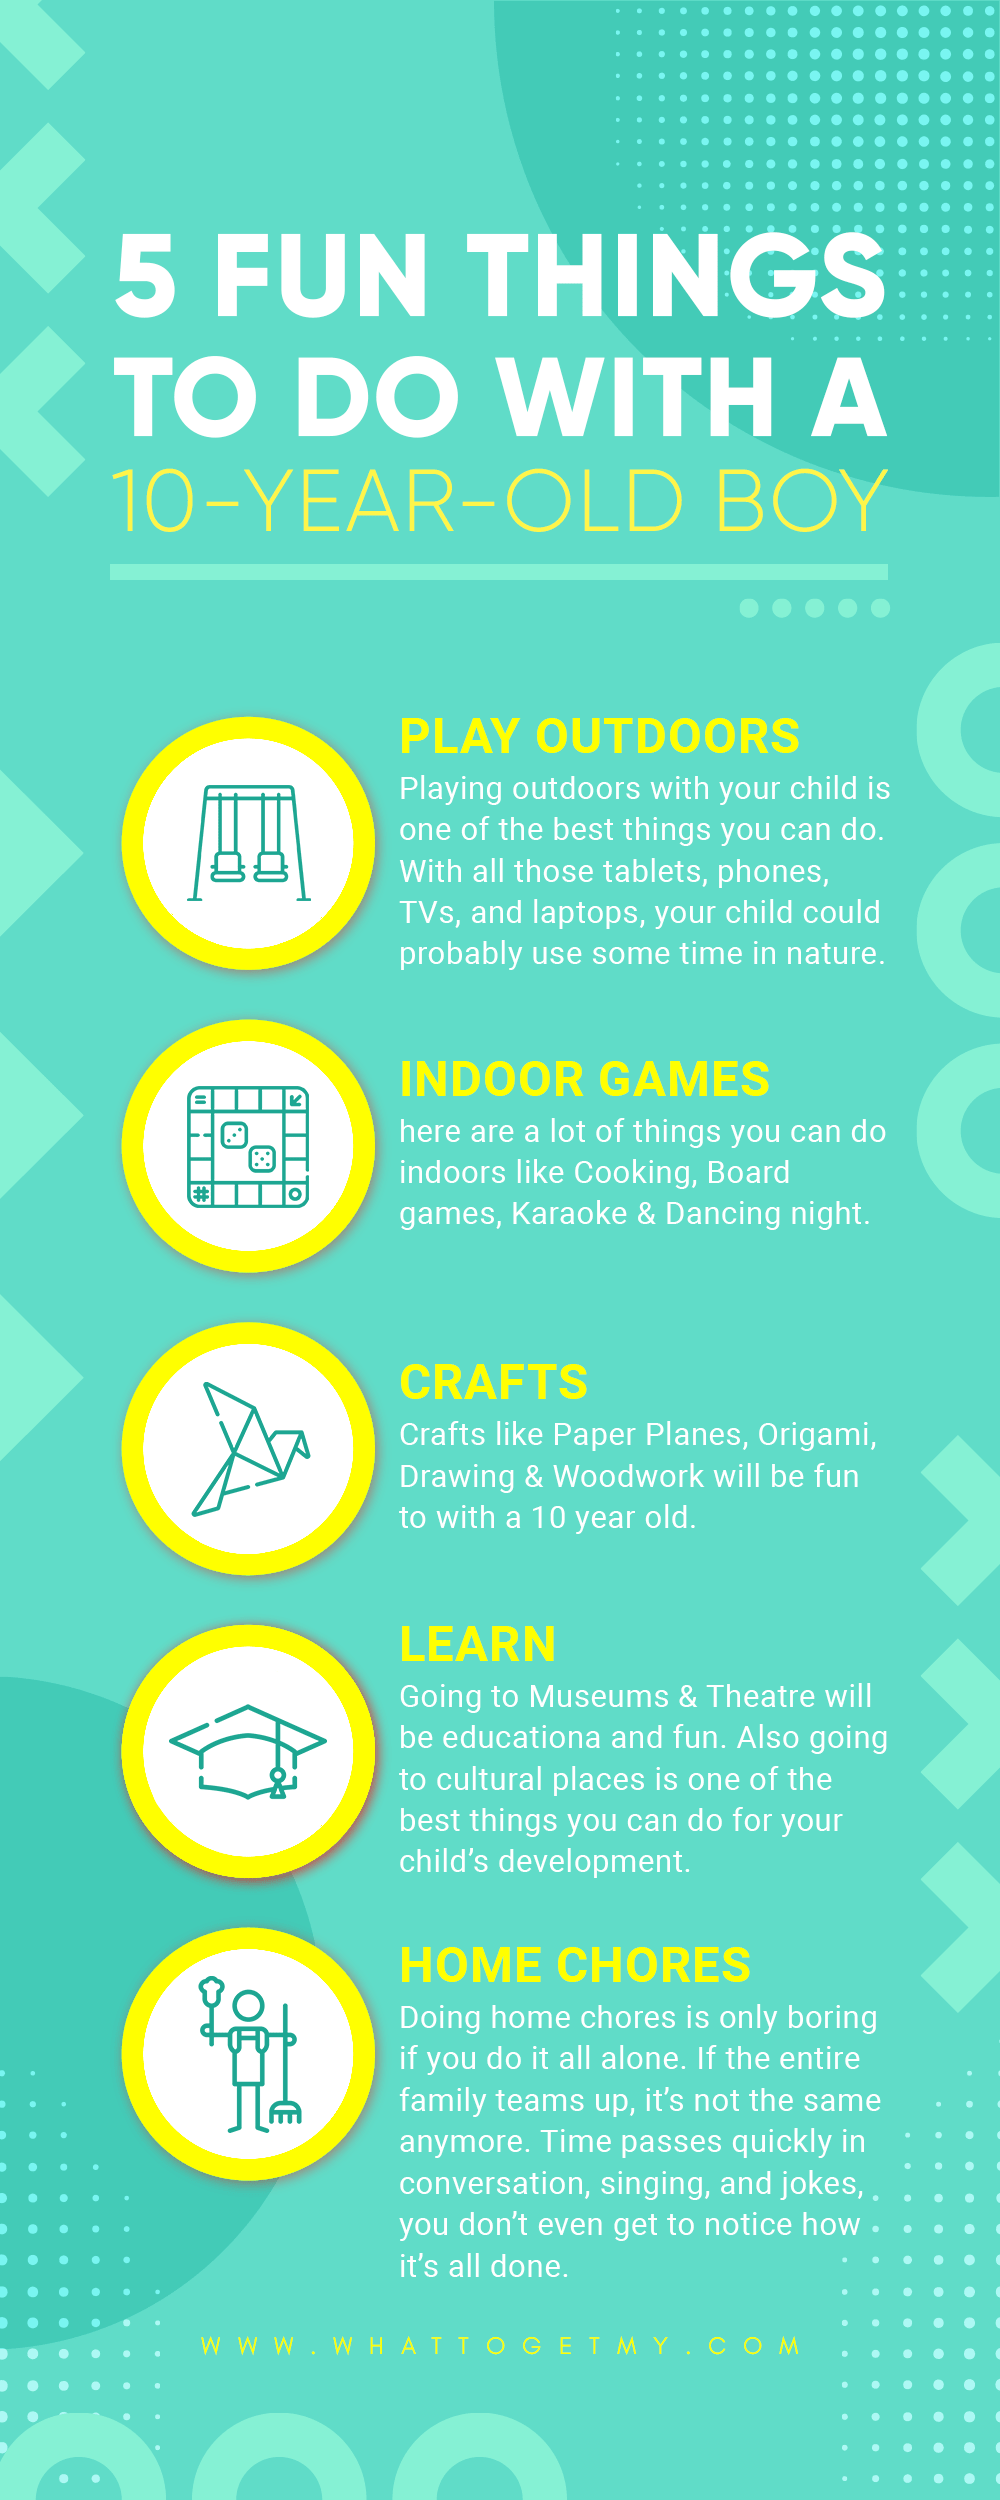 Infographic 5 Fun Things to Do With a 10-Year-Old Boy